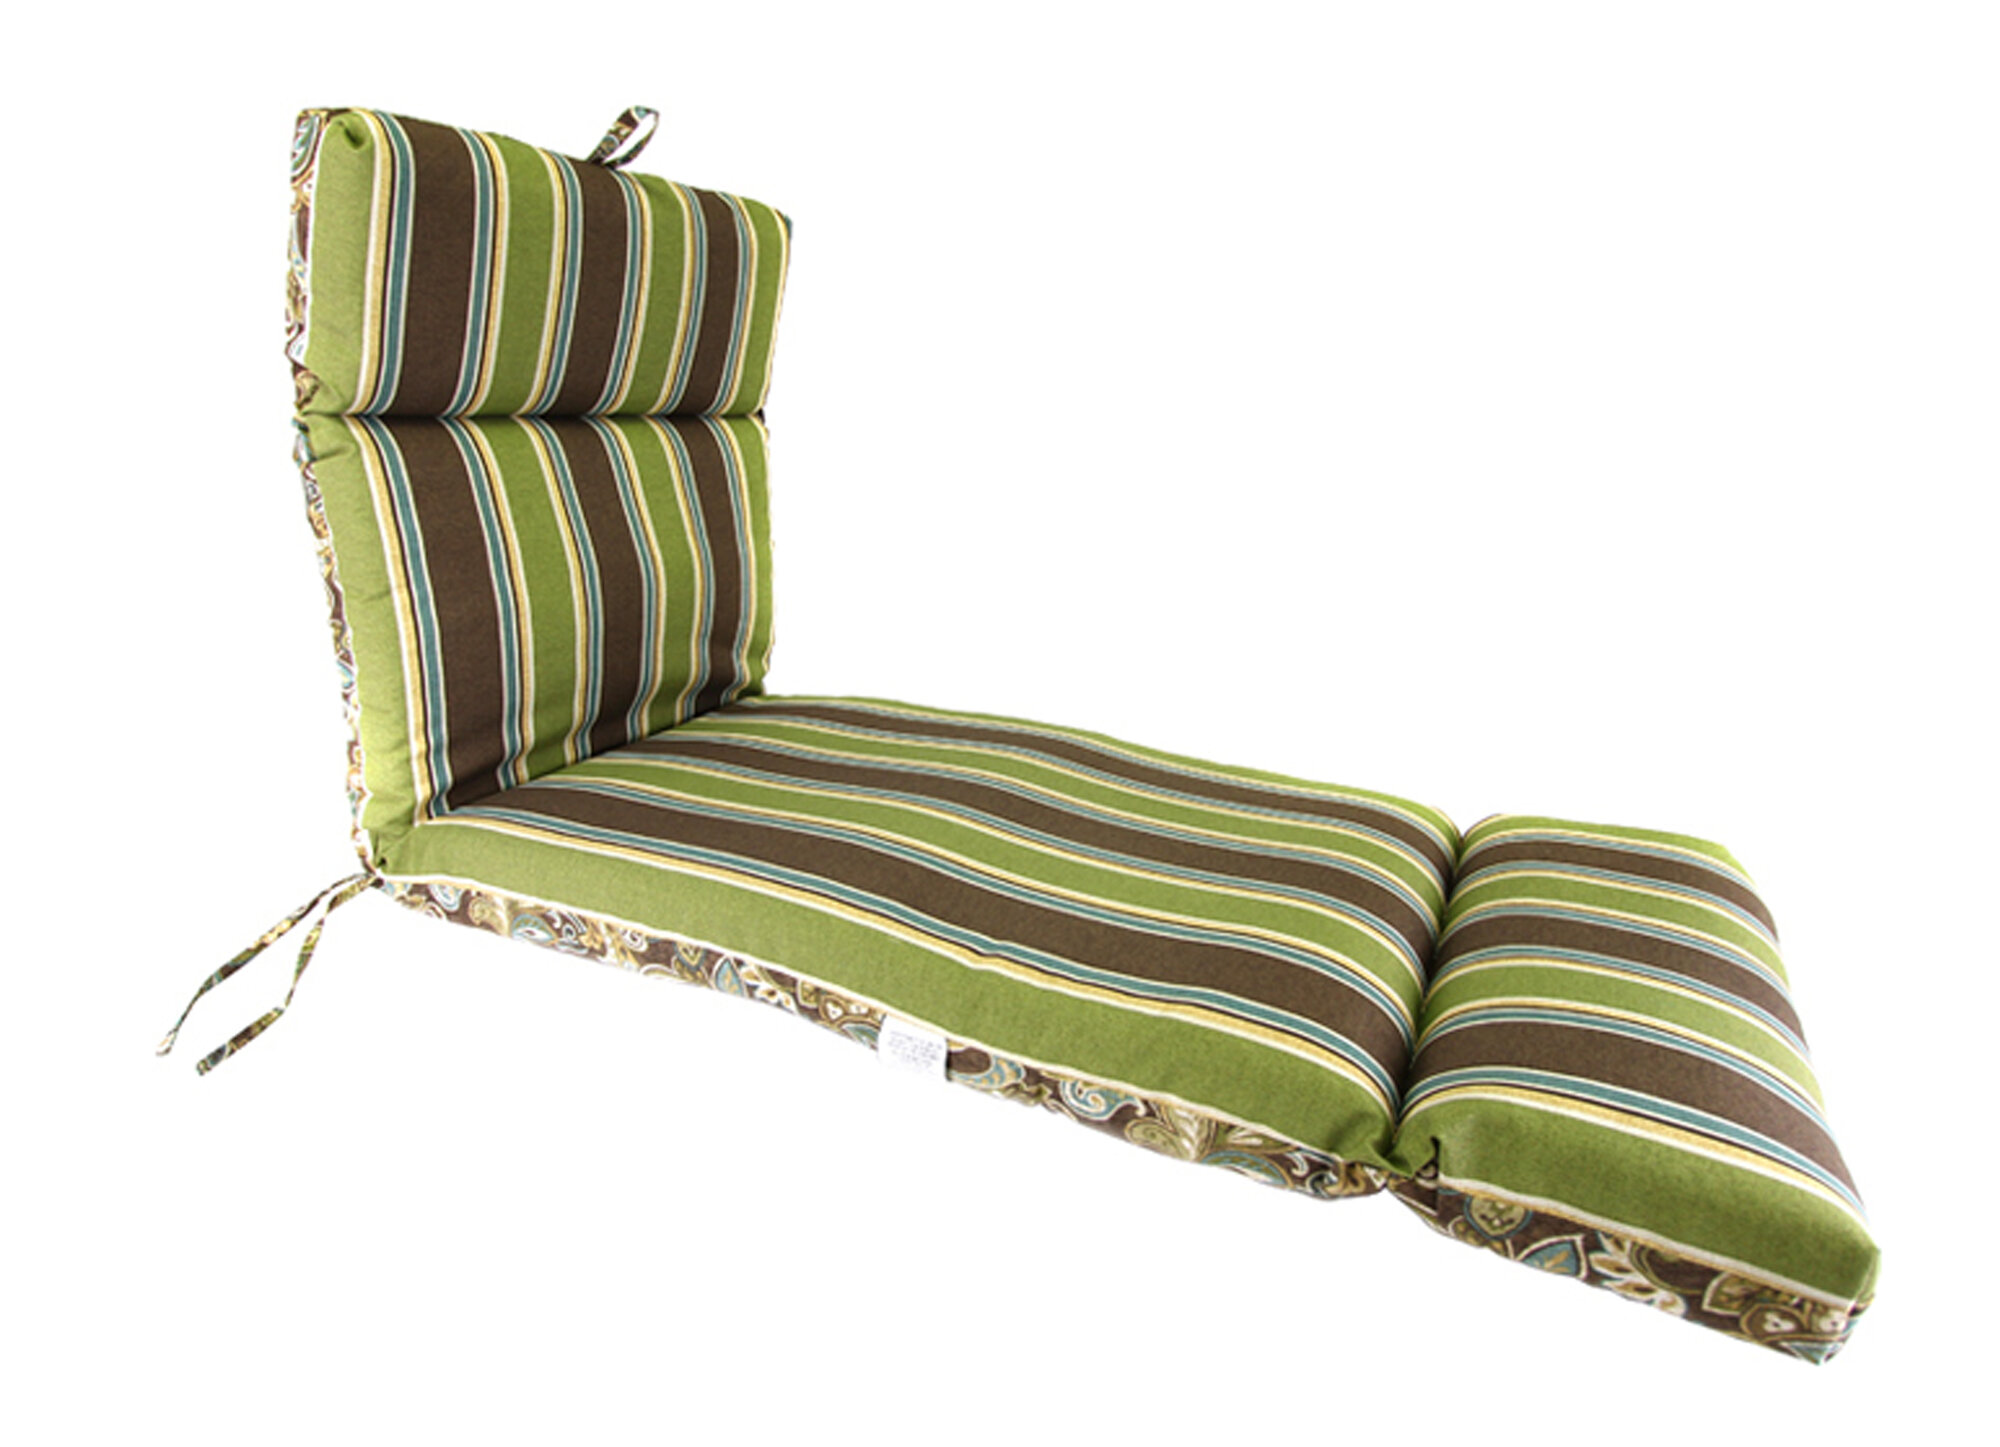 Chaise lounge reversible cushion ebay for Chaise longue cushion